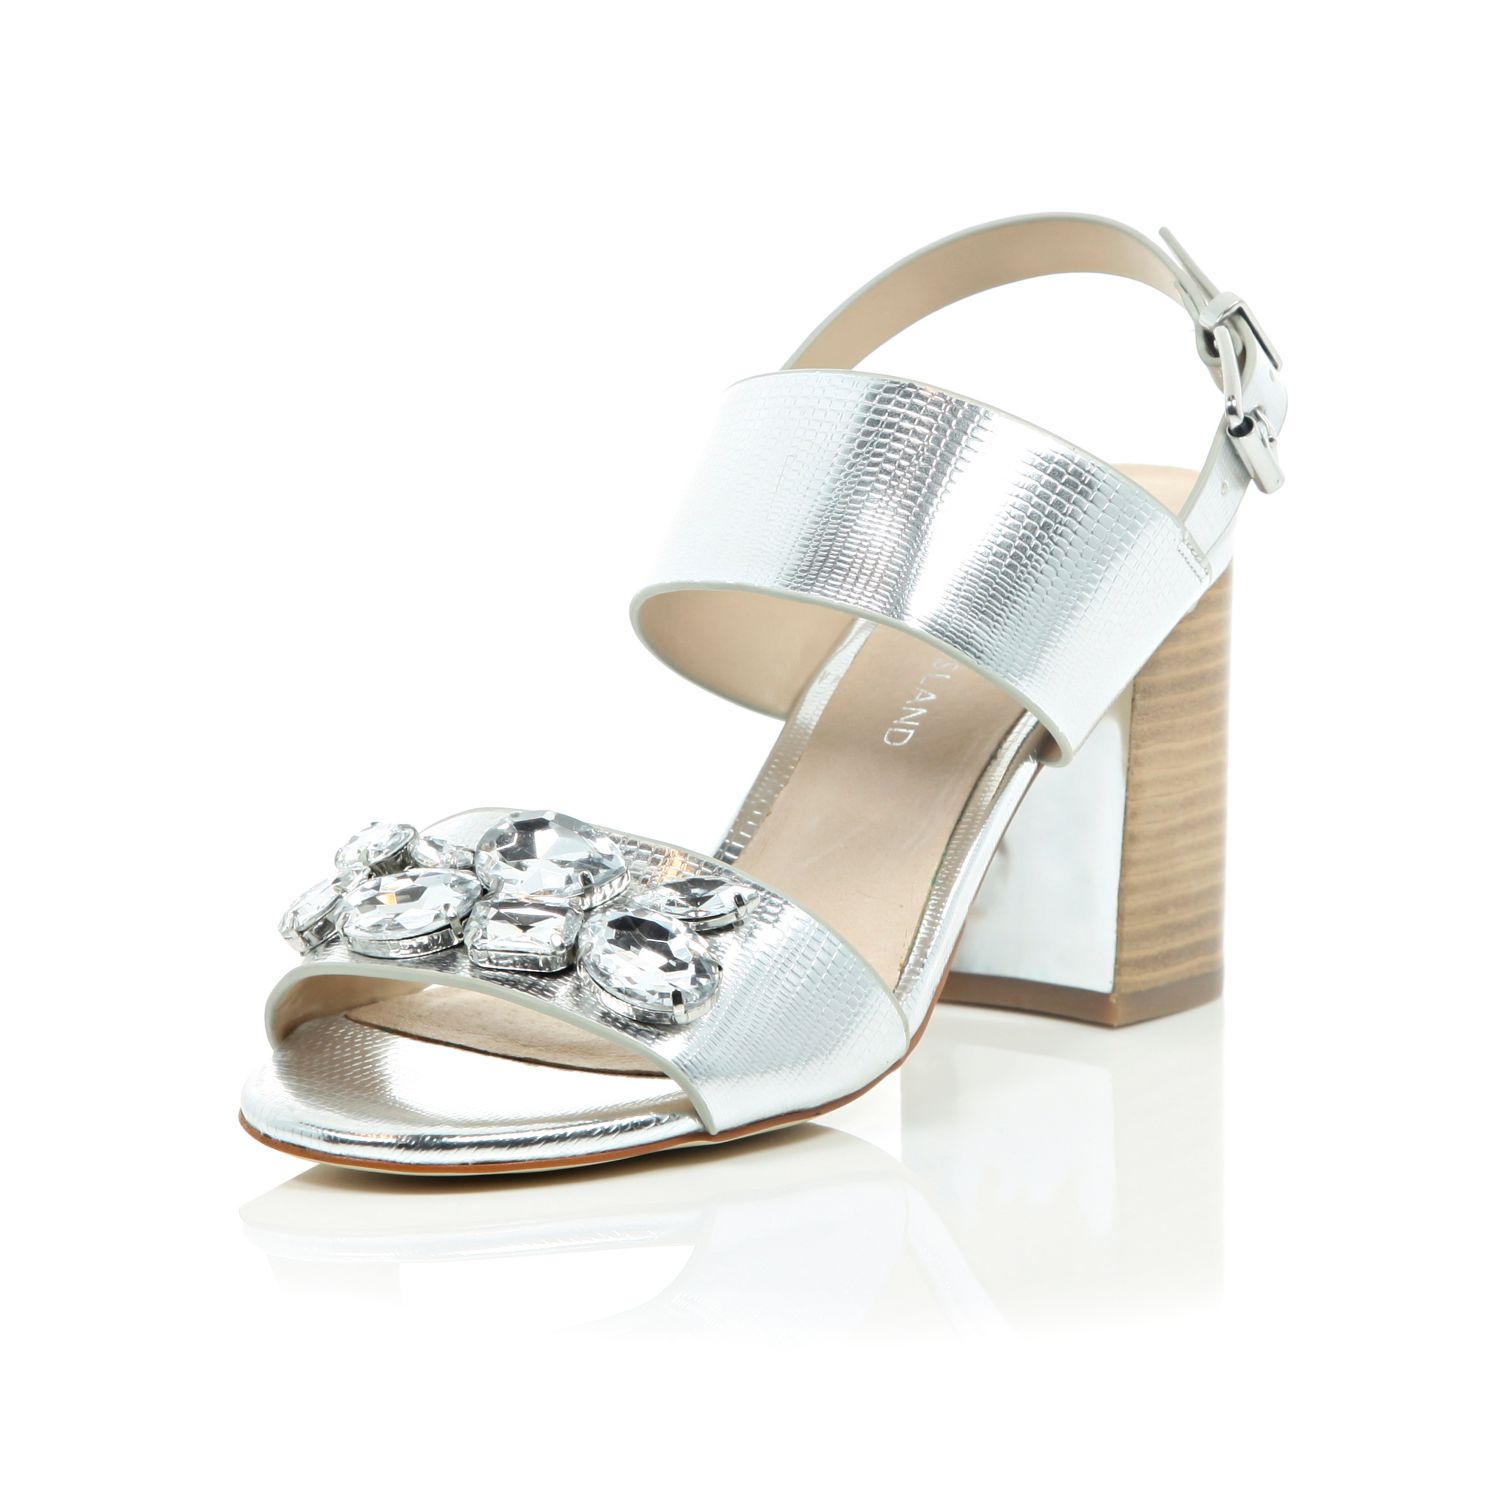 Shop Women's & Ladies Fashion Shoes at Chinese Laundry. Find boots, booties, heels, sandals, wedges, & flats. Our styles are fun, modern, feminine & free.